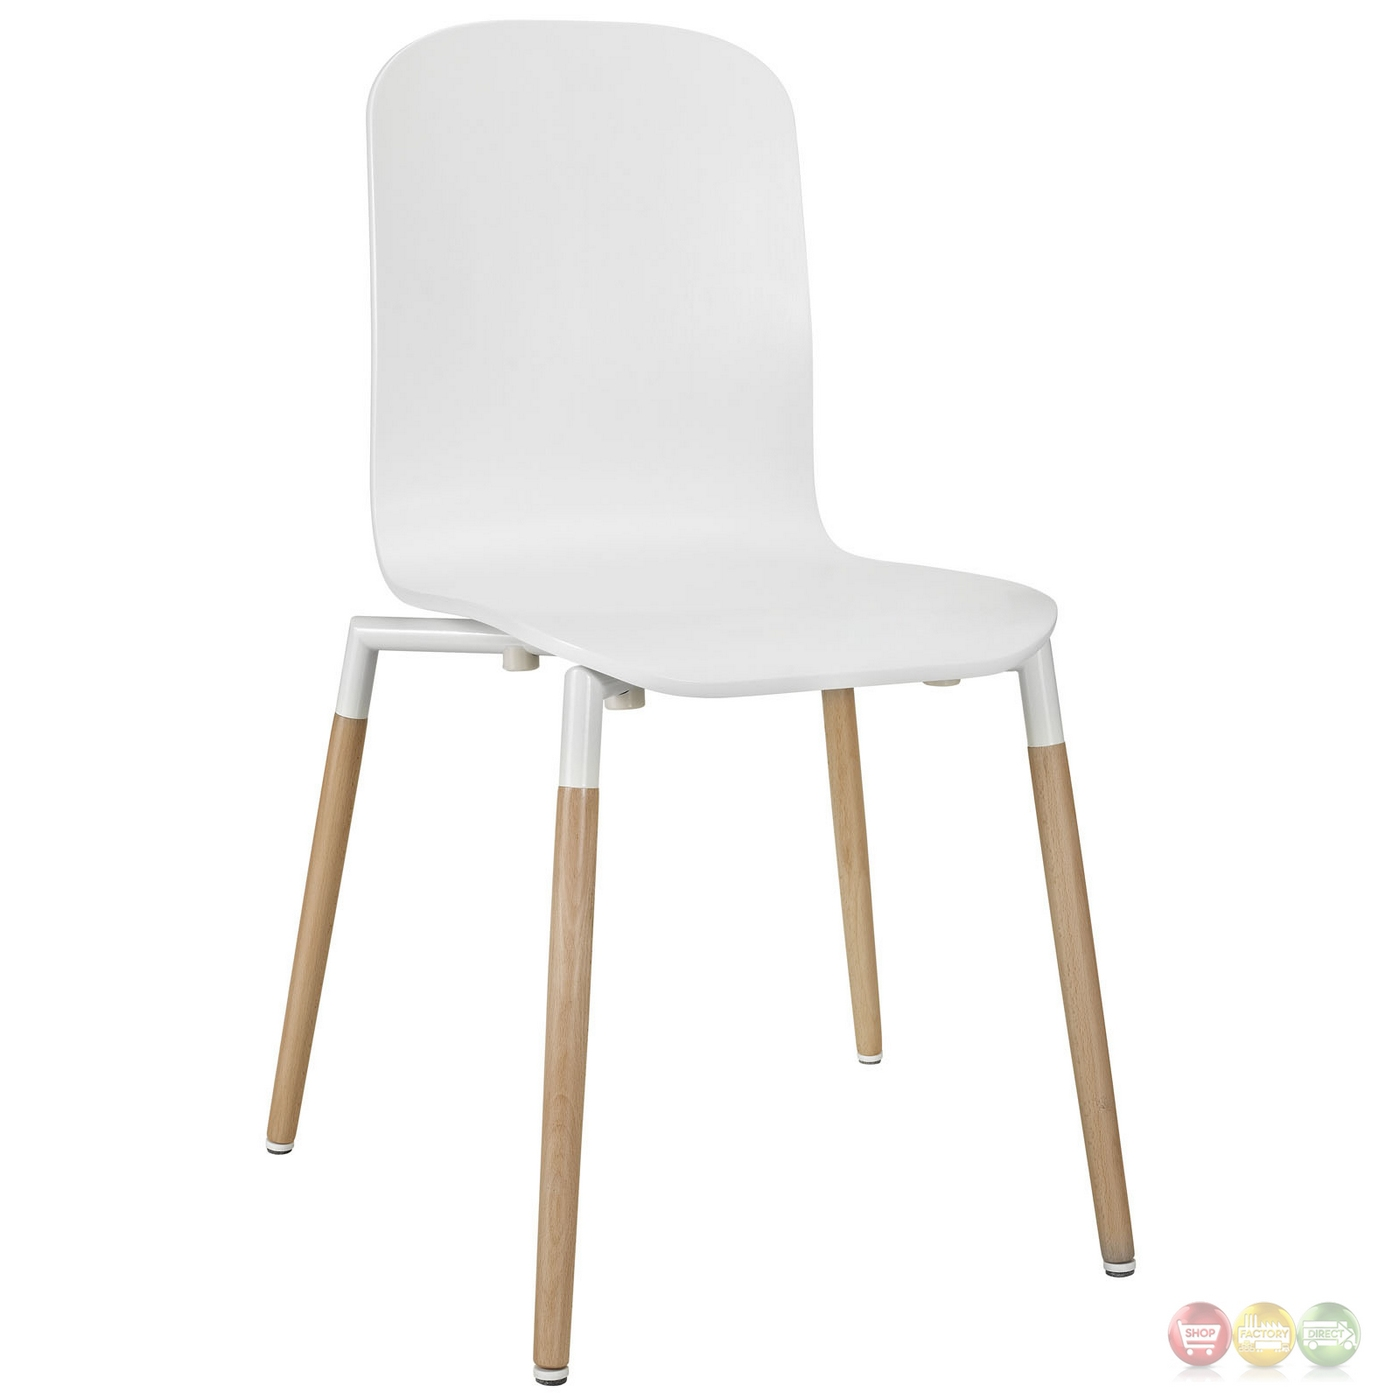 Square Dining Chairs: Stack Modern 5pc Square Two-toned Dining Chairs With Wood